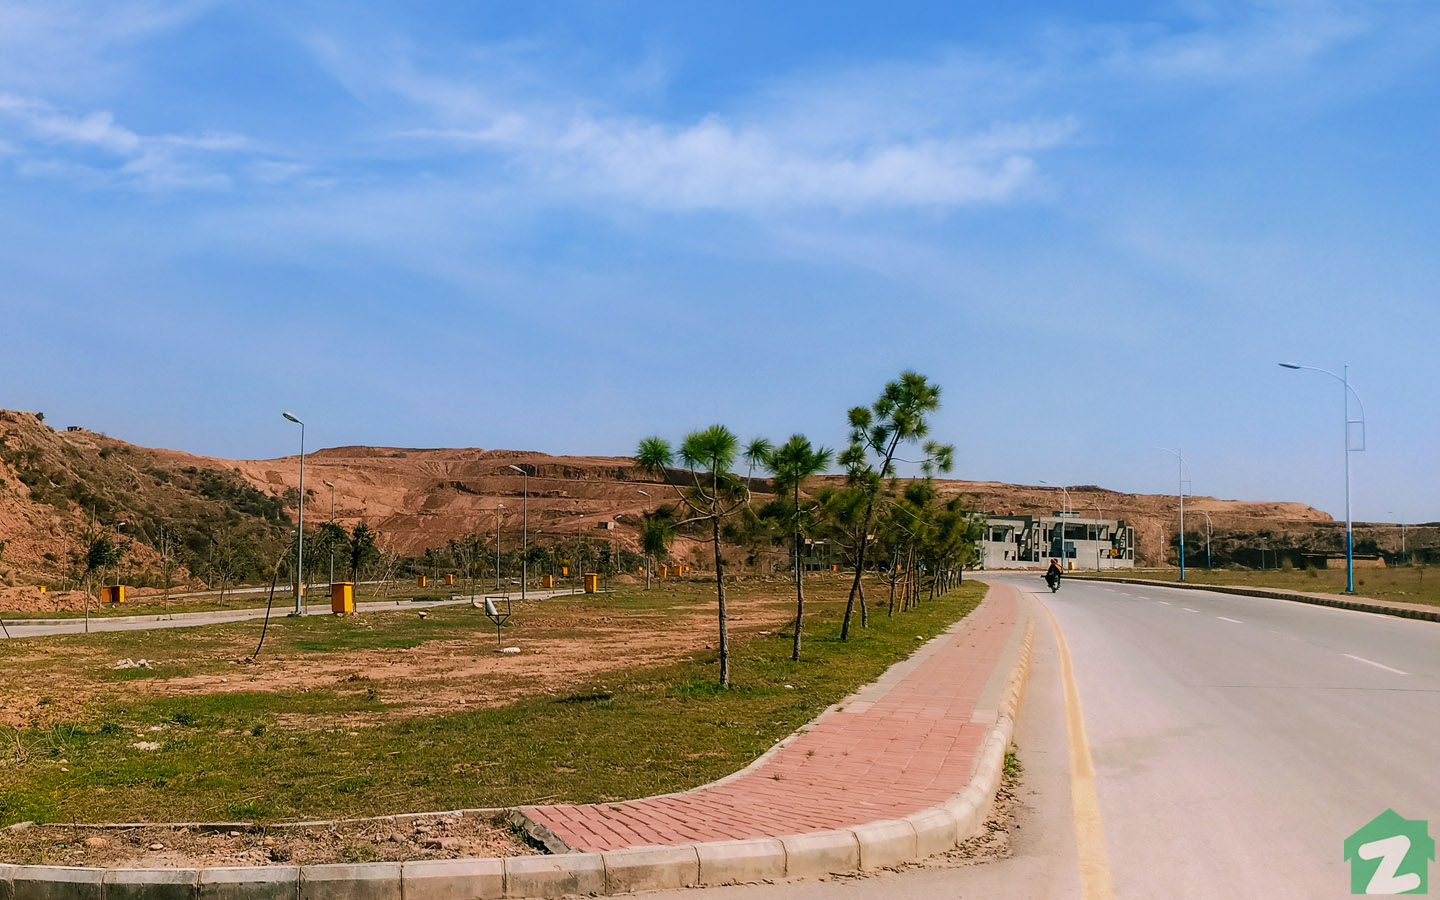 Green spaces can be found across DHA Phase 3 Islamabad